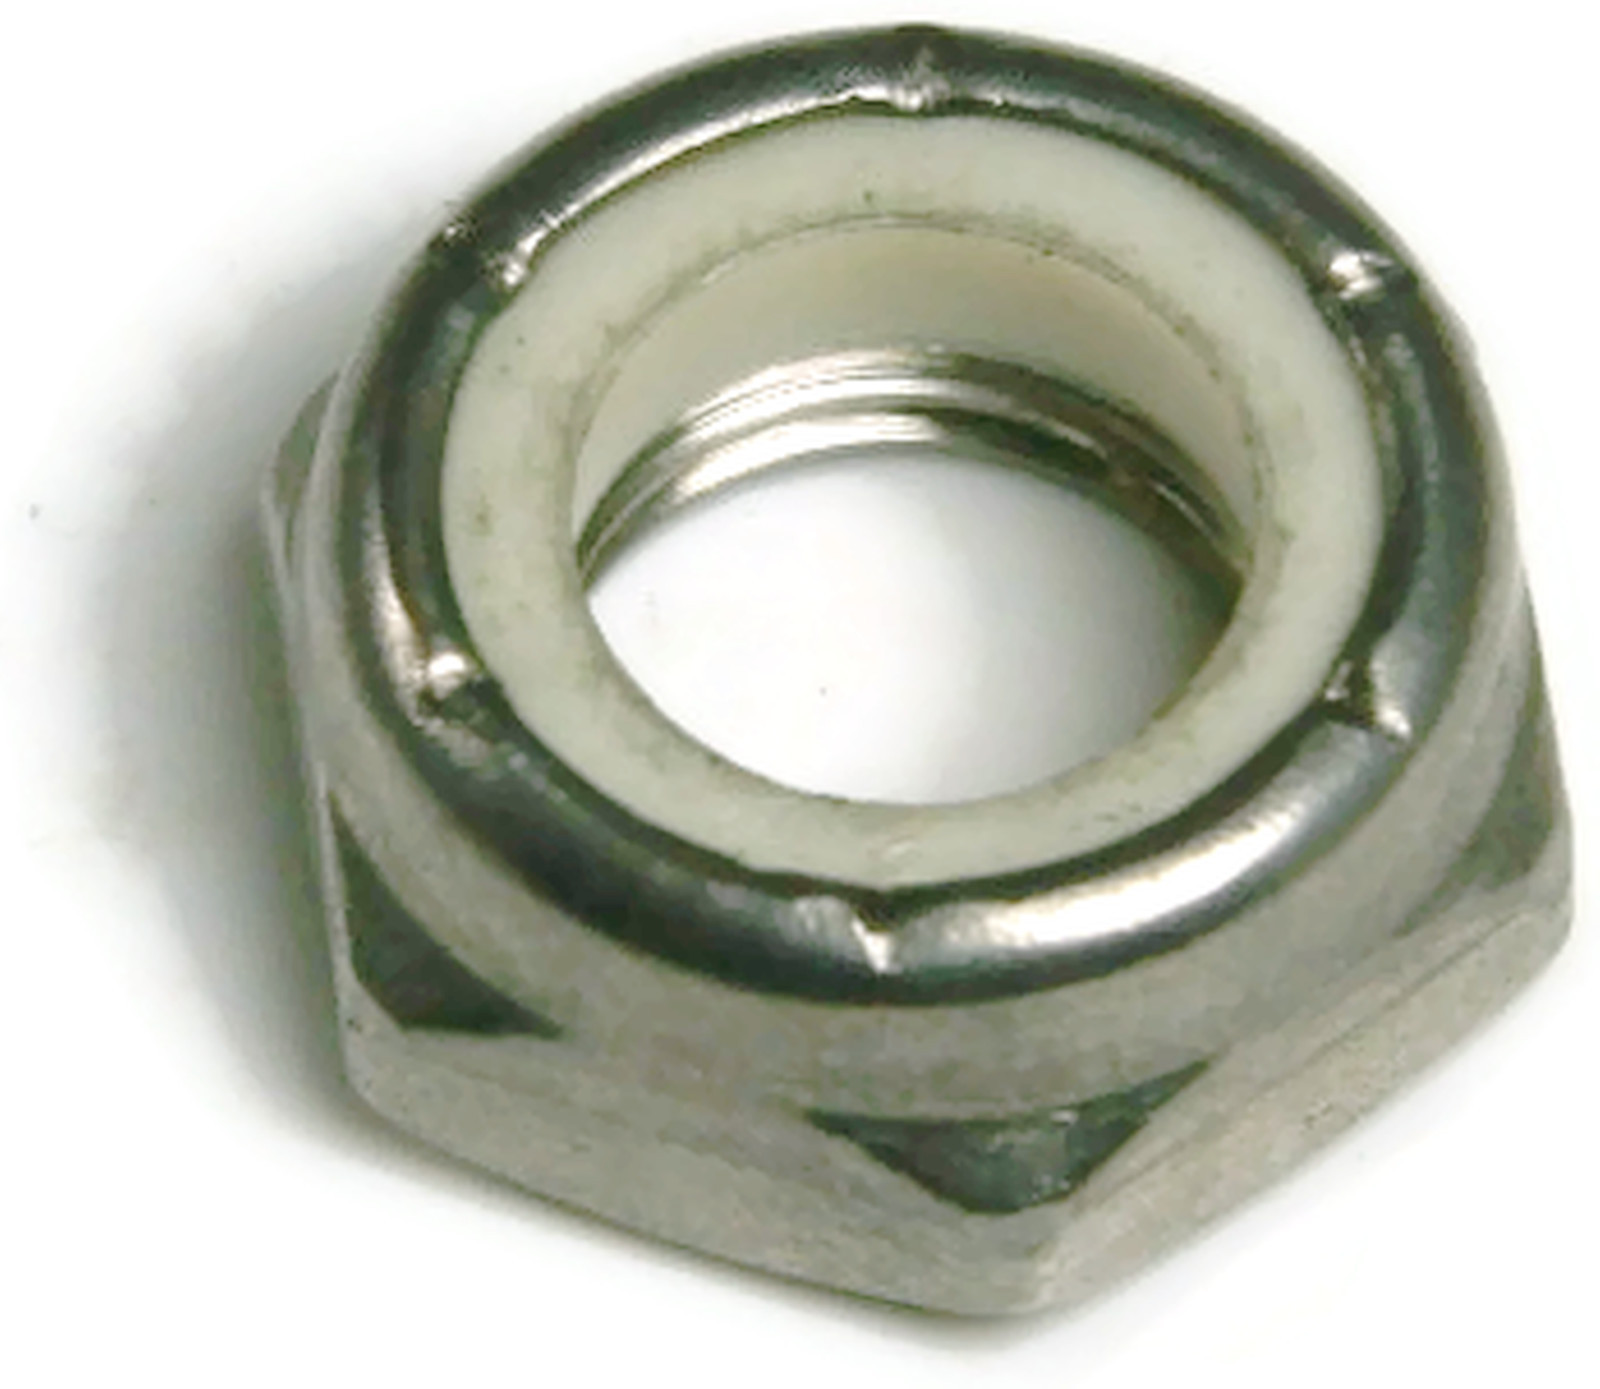 Stainless Steel Thin Jam Nylon Insert Lock Nuts 10-32 pack of 50 Marine Bolt Supply